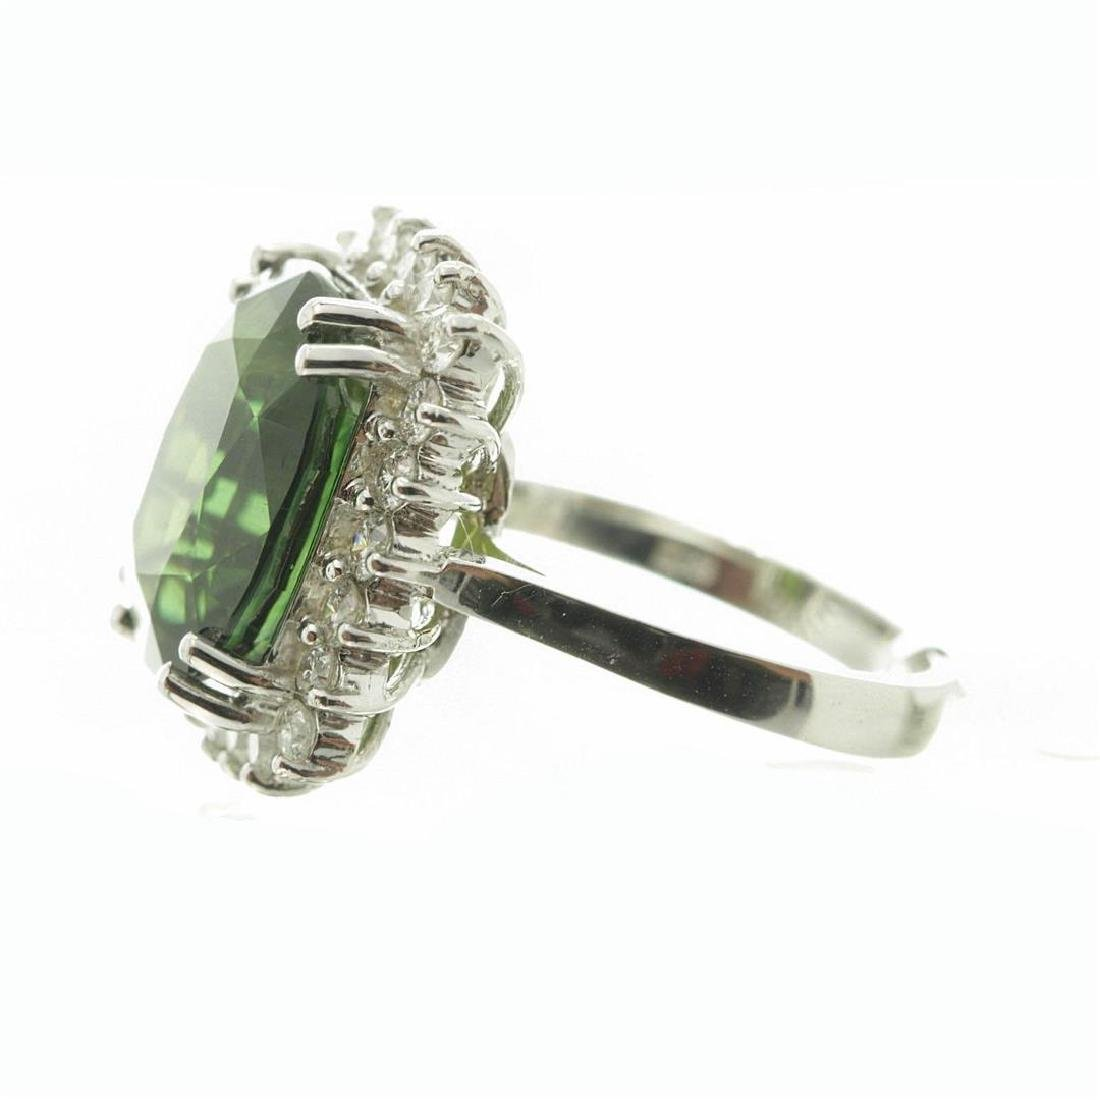 9.75 ctw Green Sapphire and Diamond Ring - 14KT White - 7